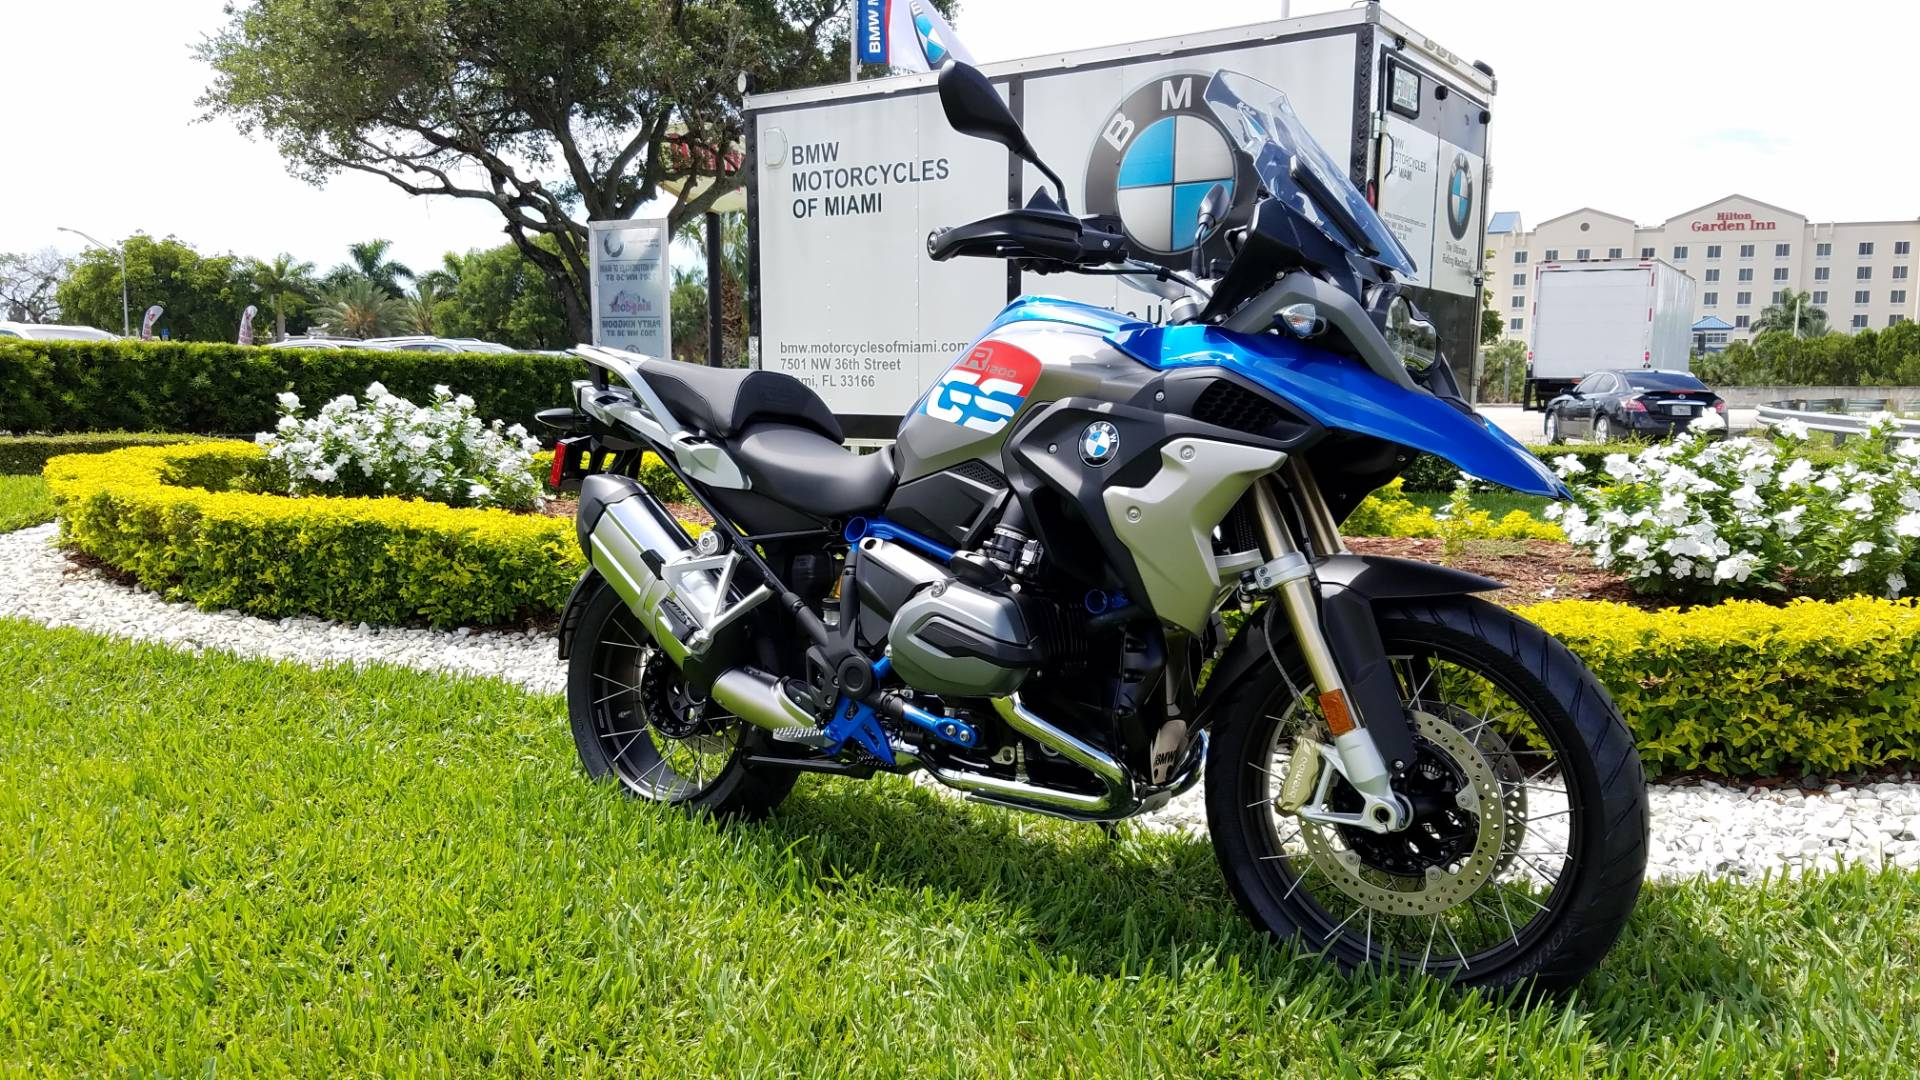 New 2017 BMW R 1200 GS For Sale, BMW R 1200 GS Rally For Sale, BMW Motorcycle R 1200GS, new BMW 1200GS, New BMW Motorcycle